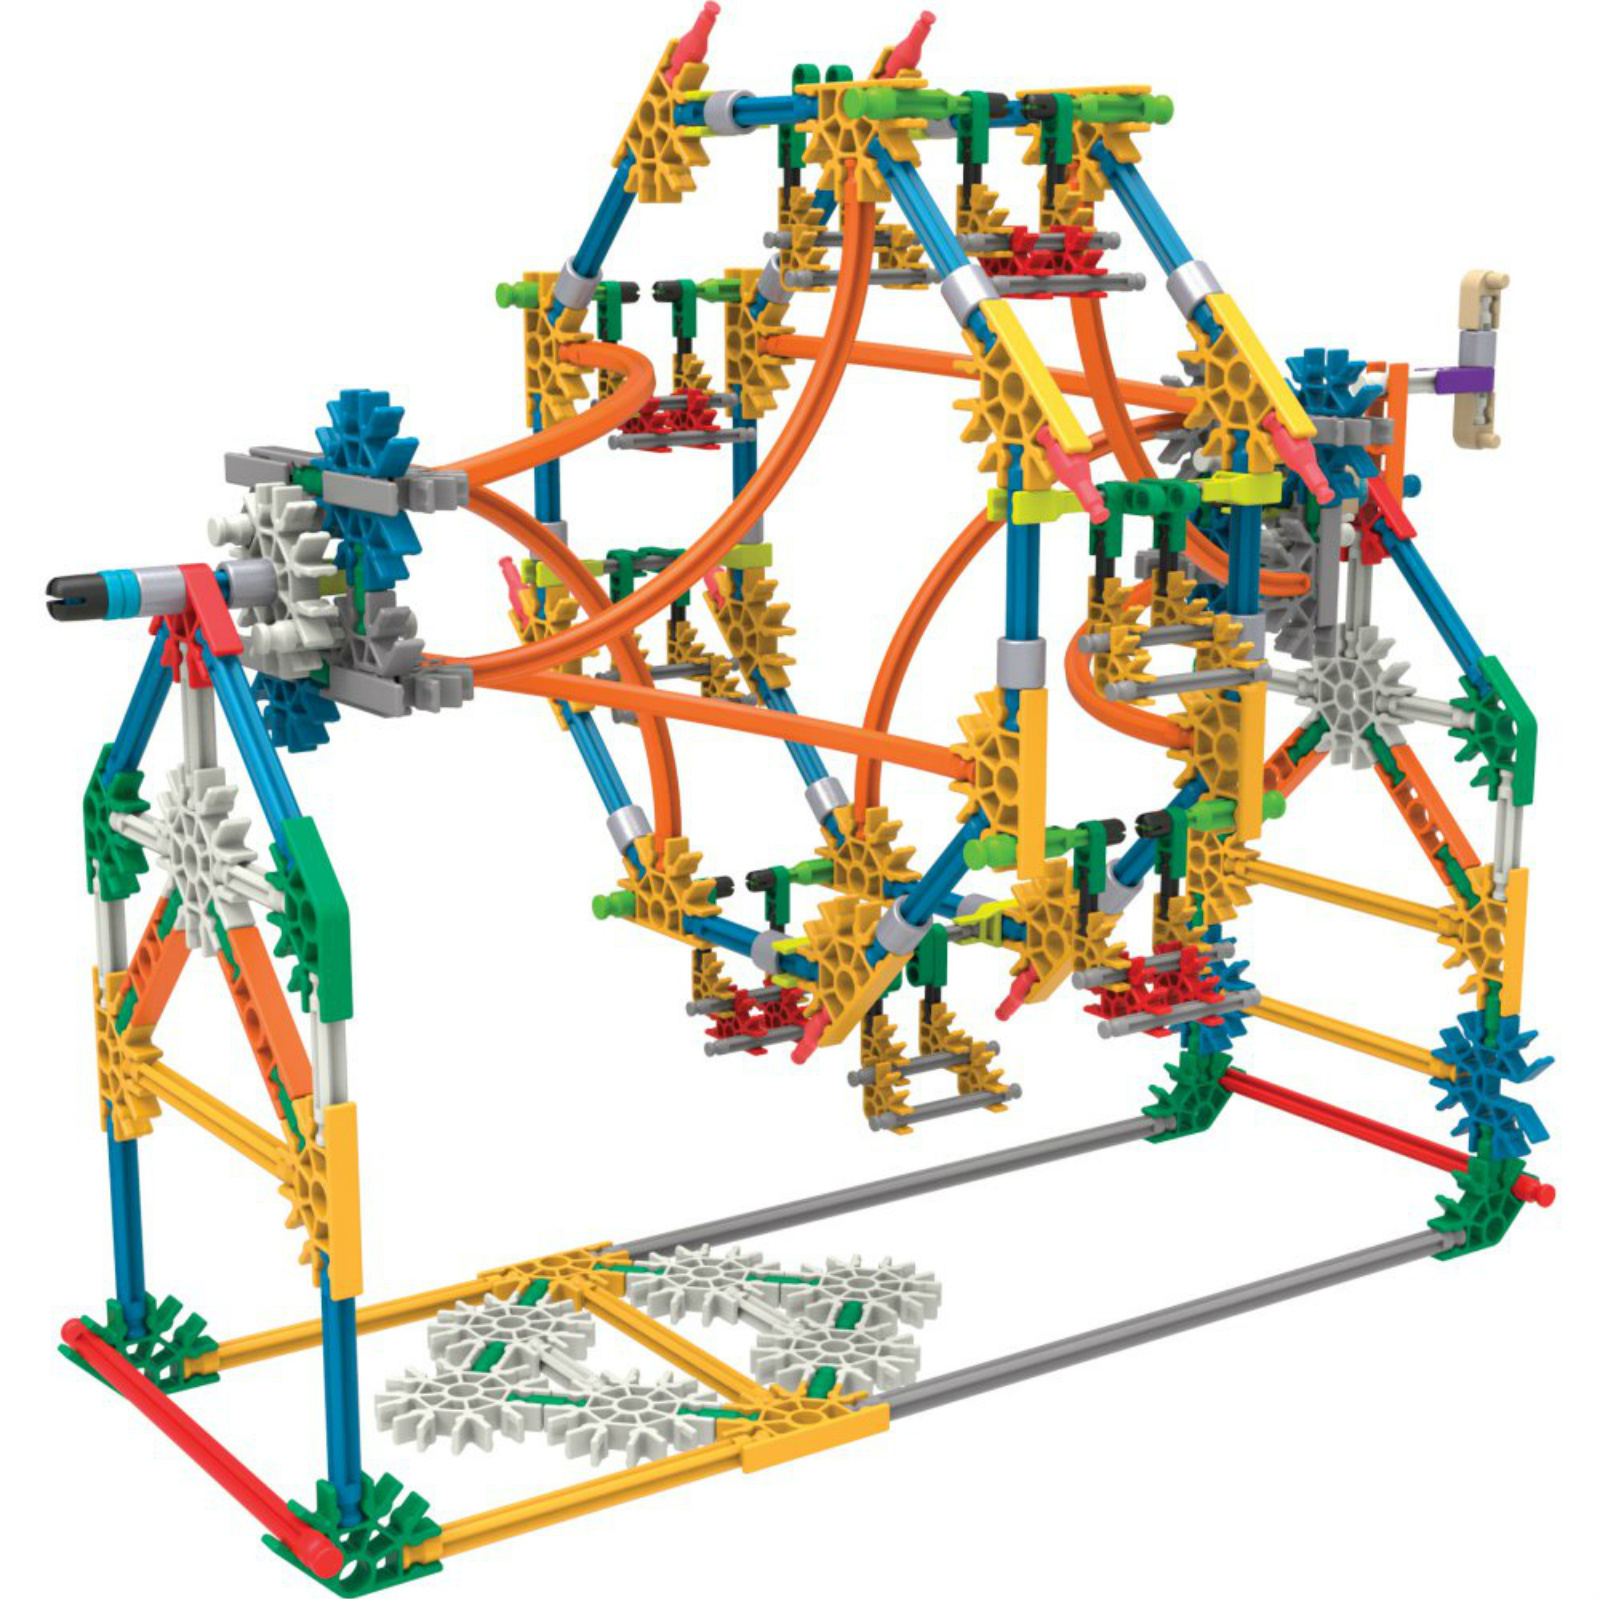 Best Tinker Toys For Kids : Educational building set tinkertoy kids and similar items